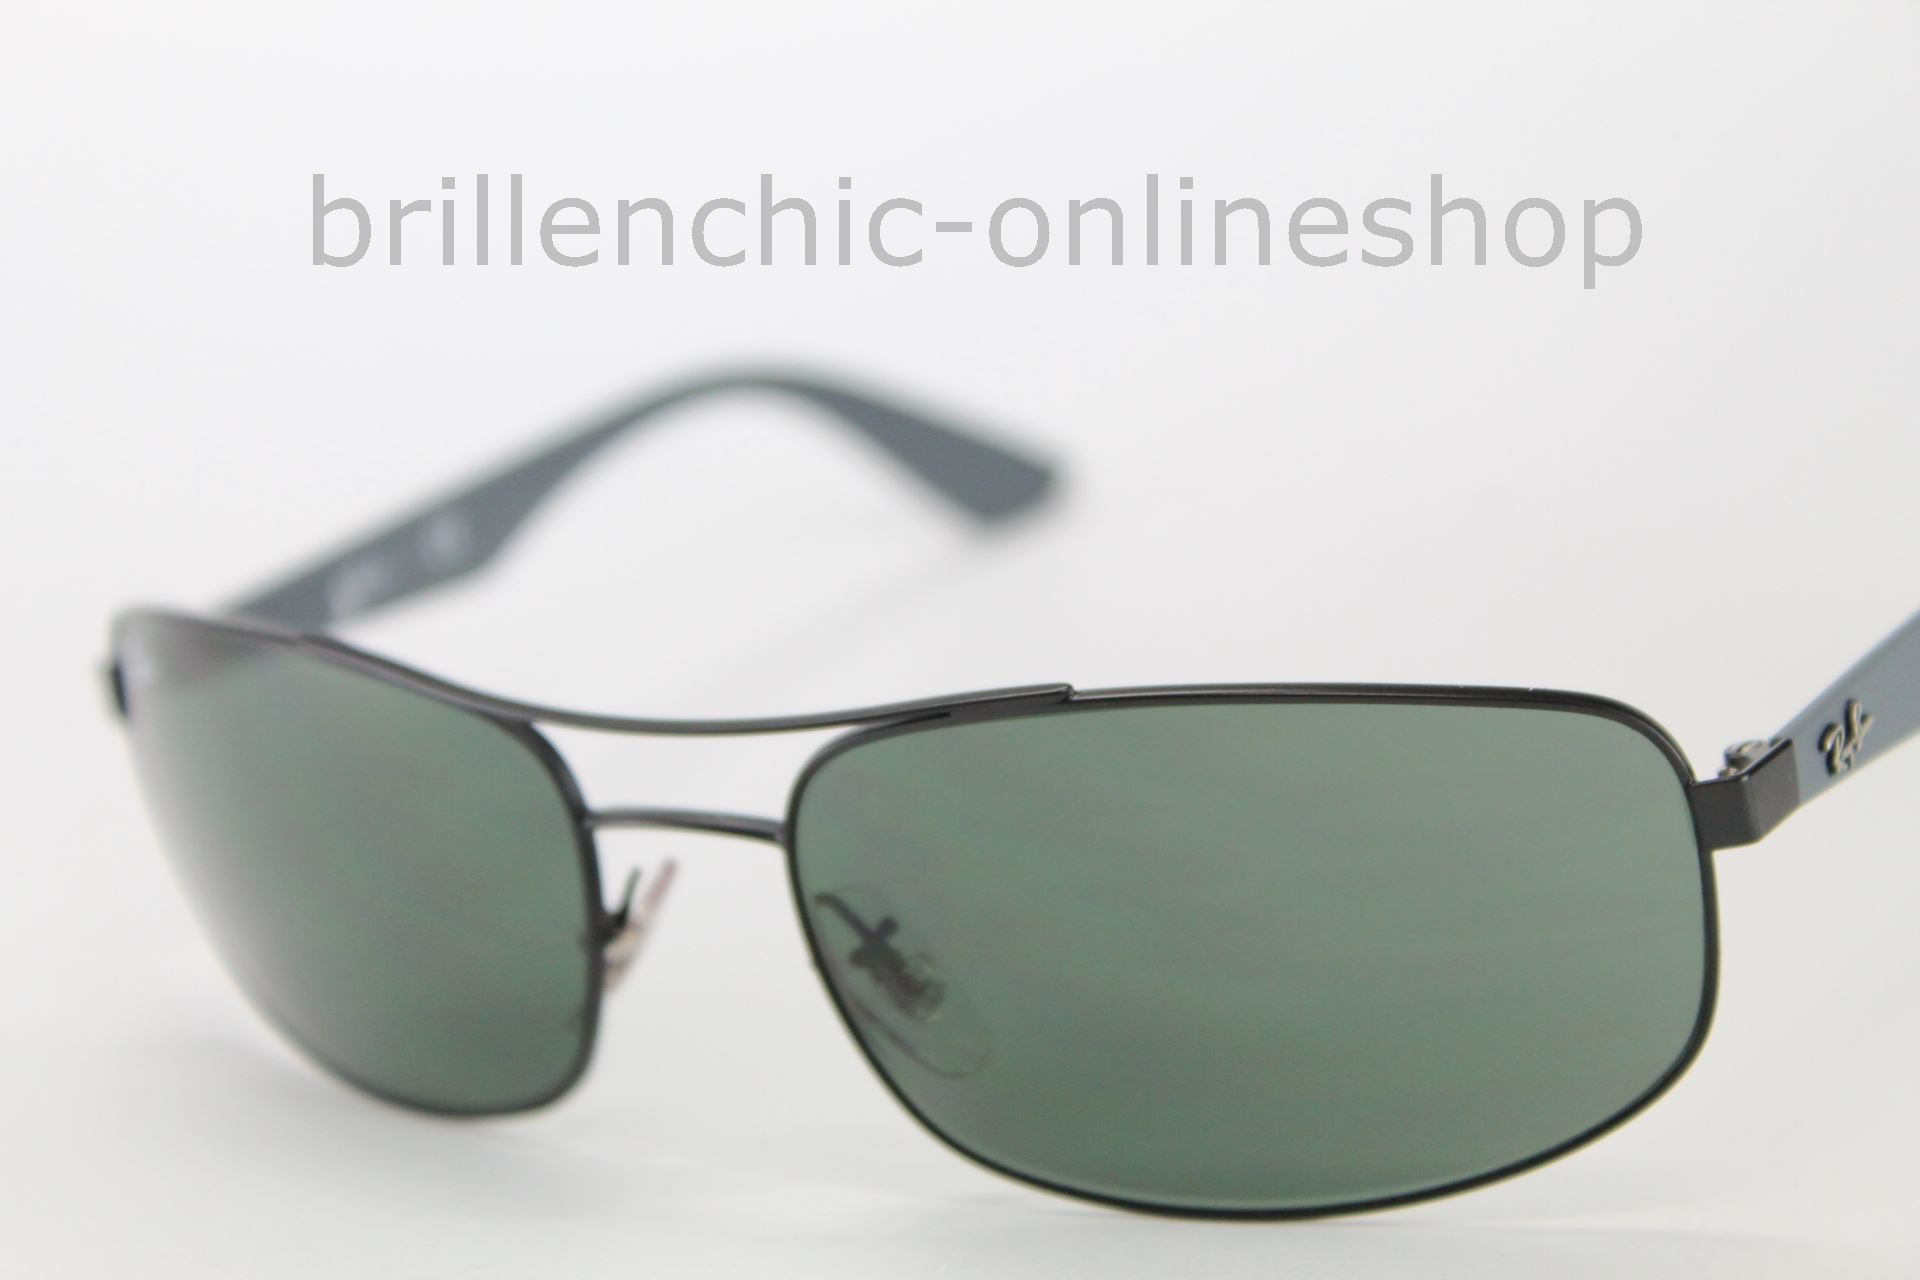 db691fac3ee Brillenchic-onlineshop in Berlin - Ray Ban RB 3527 006 71